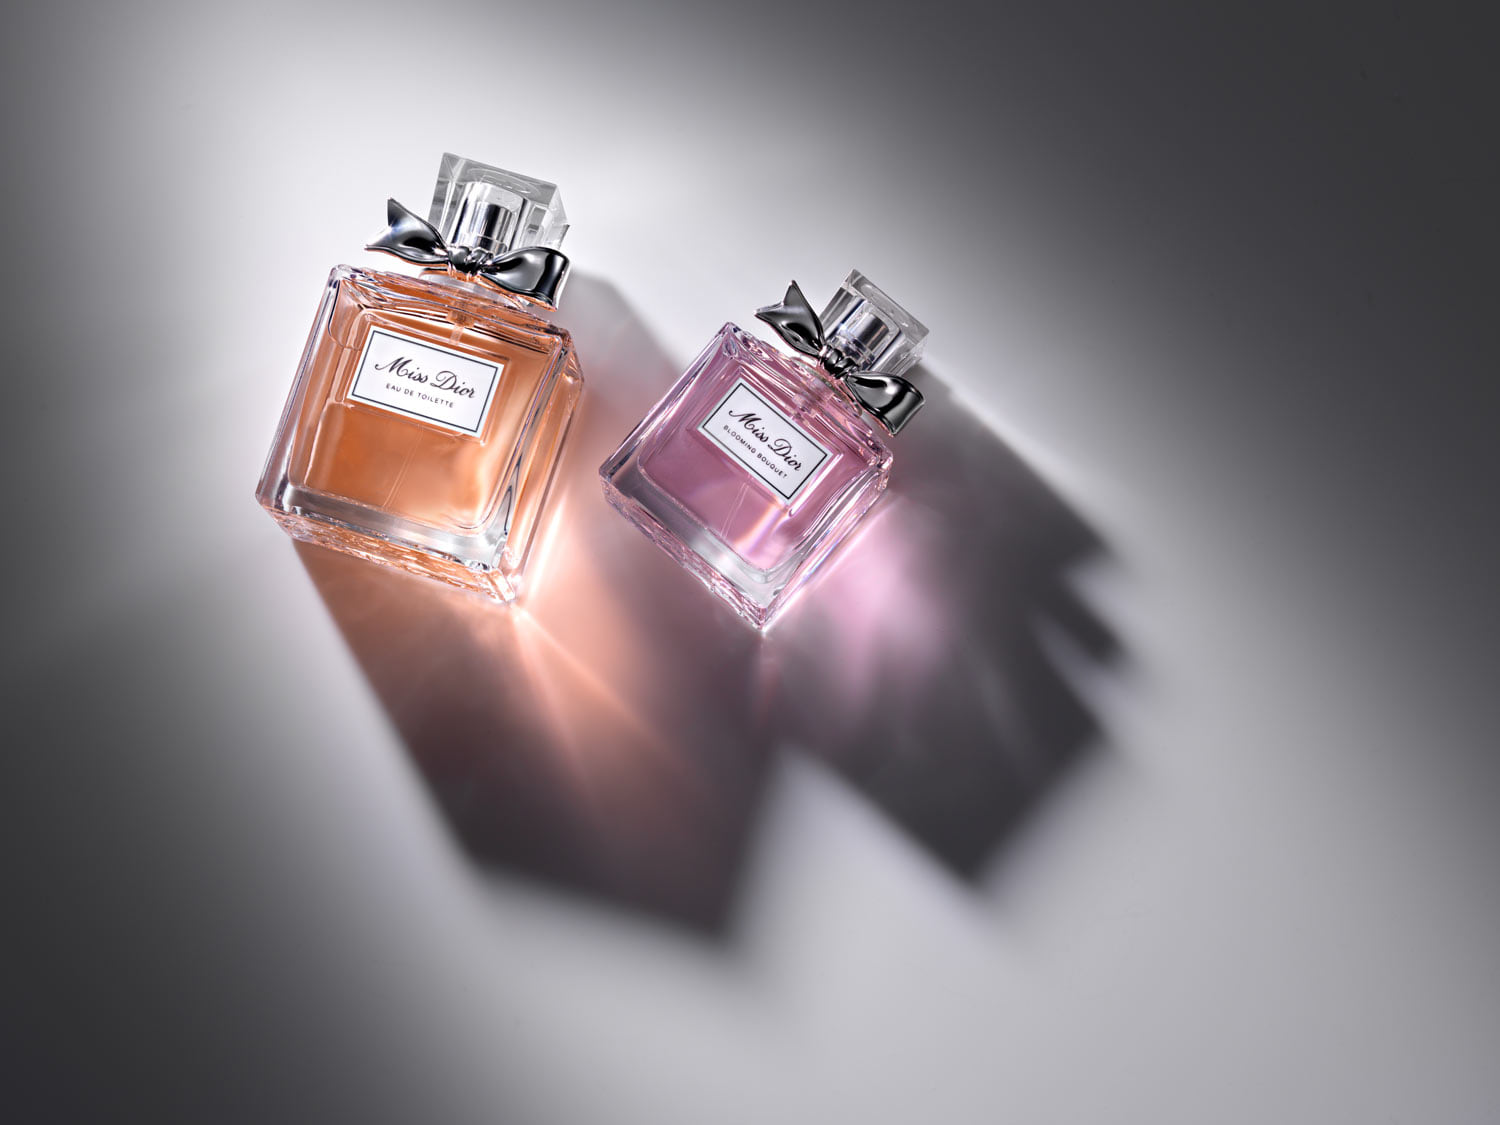 Dior perfume product photography by Karl Taylor